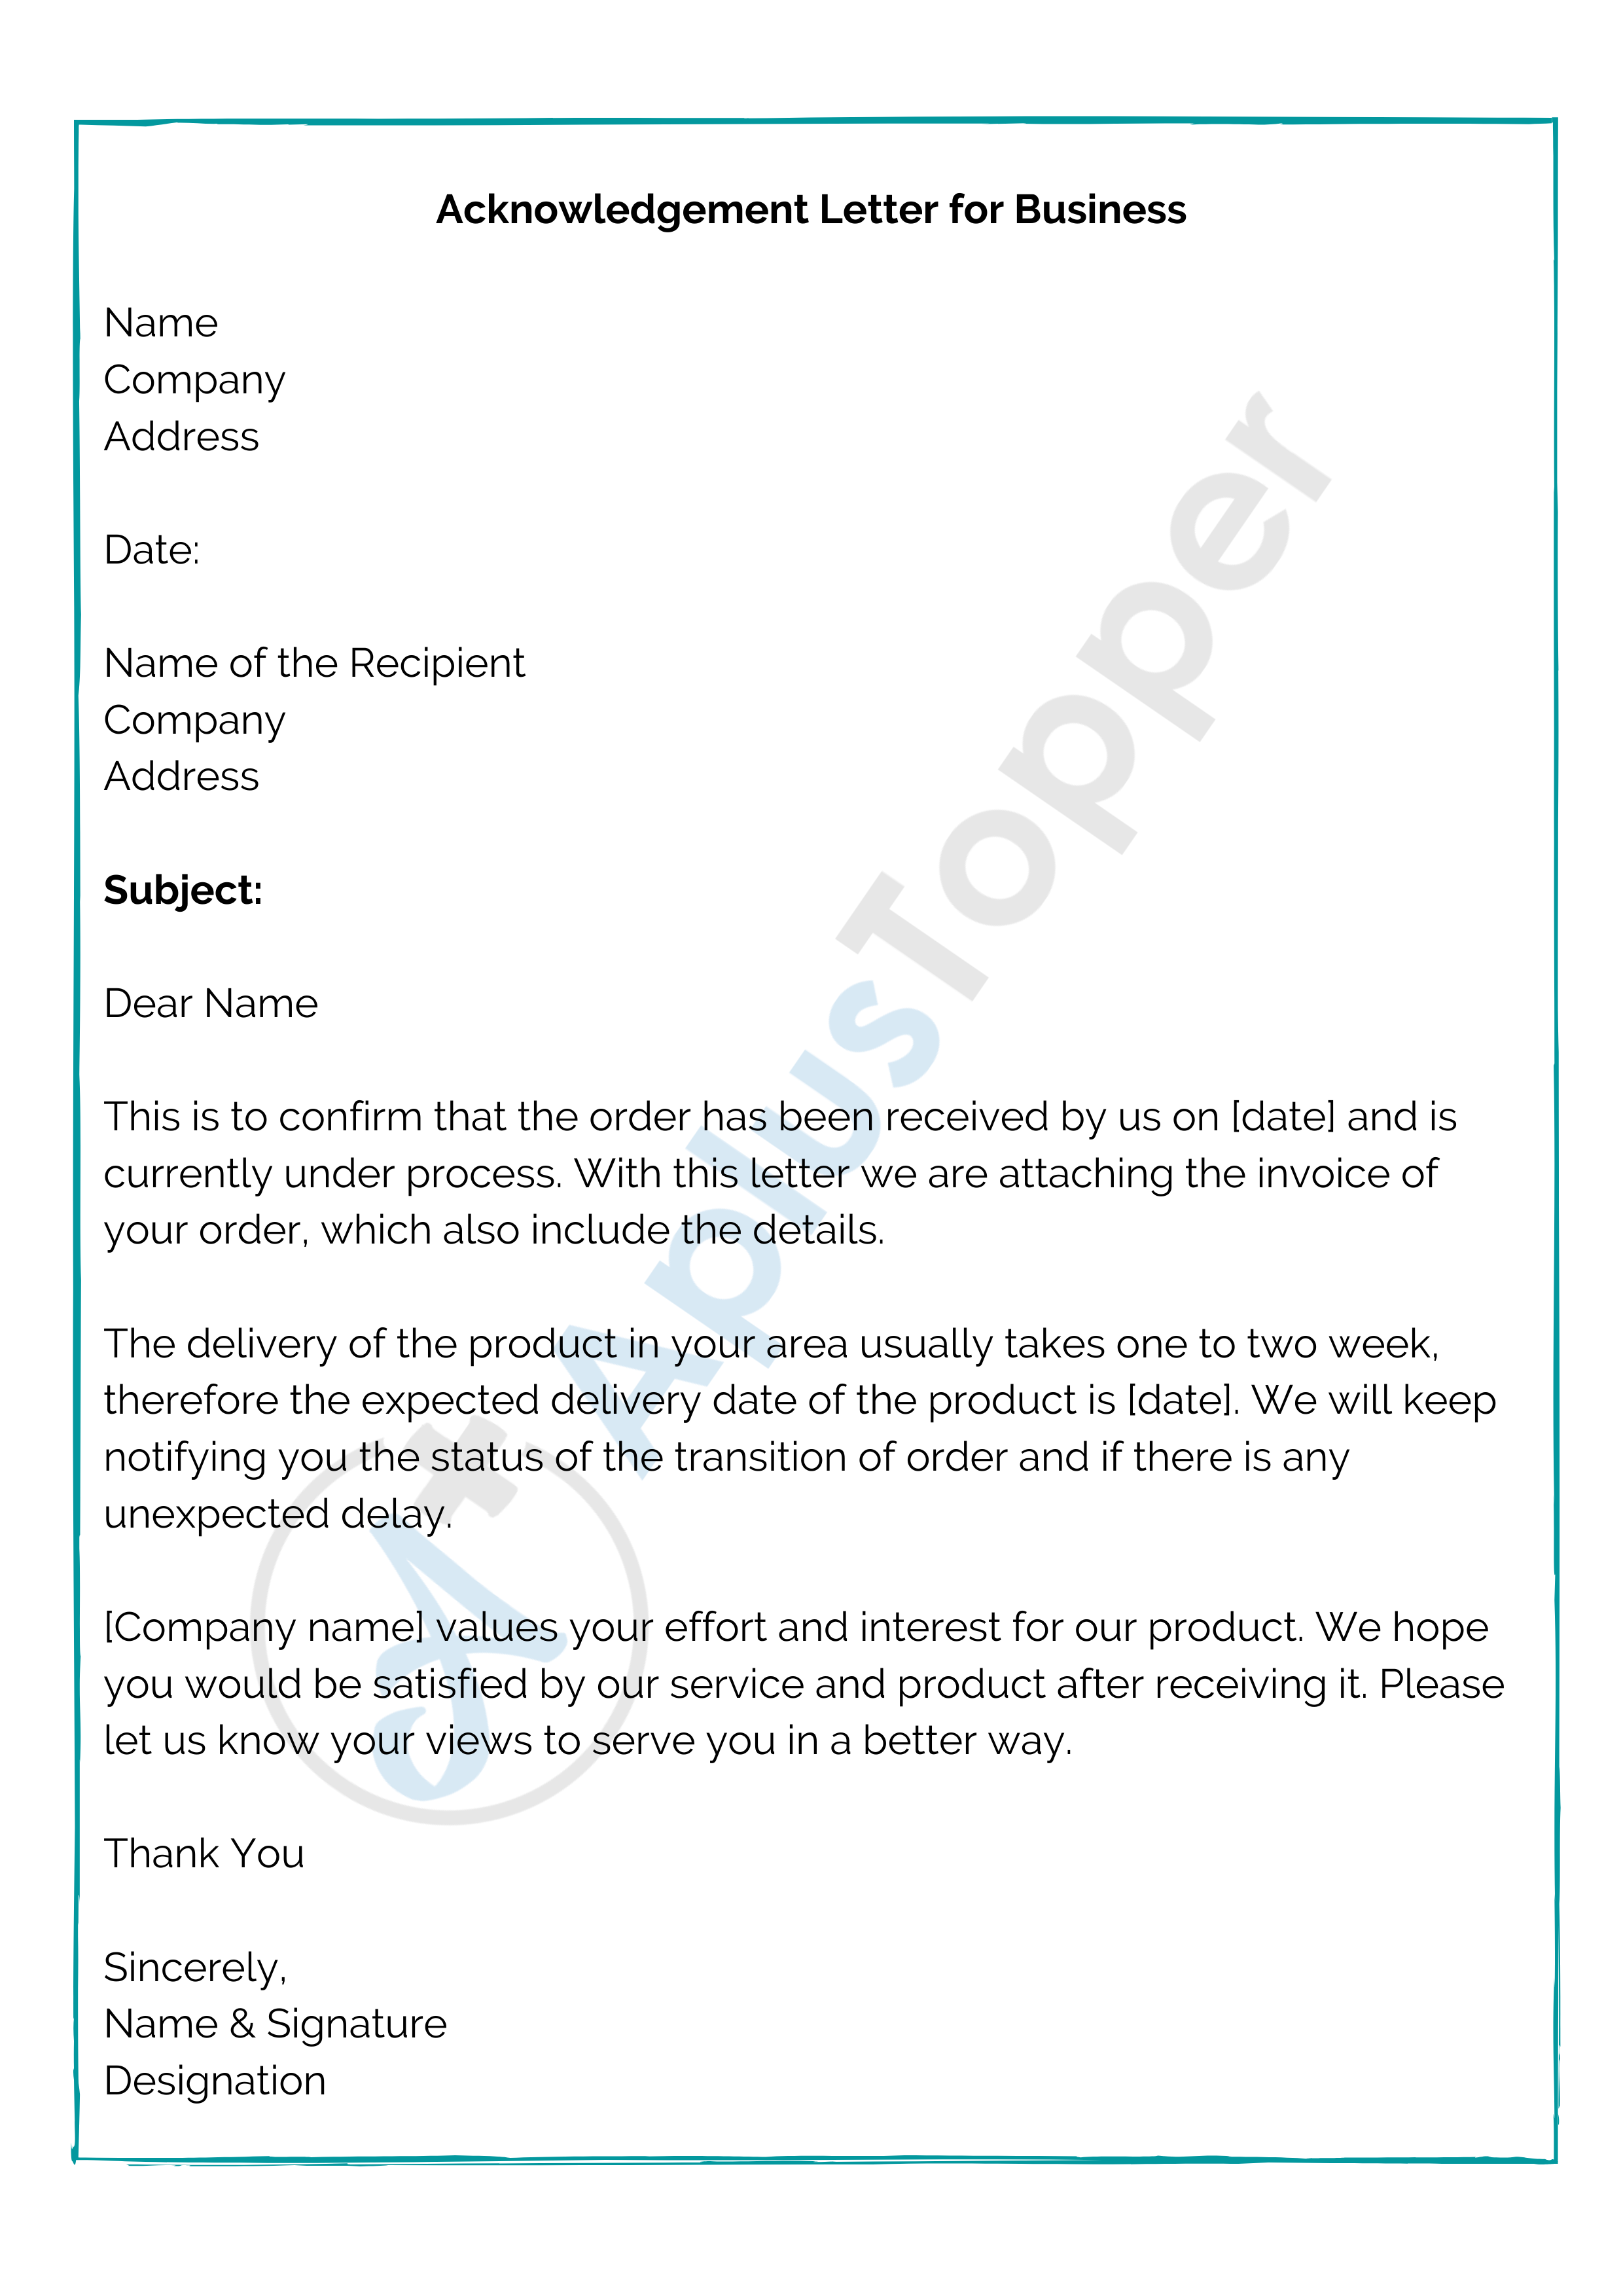 Acknowledgement Letter for Business